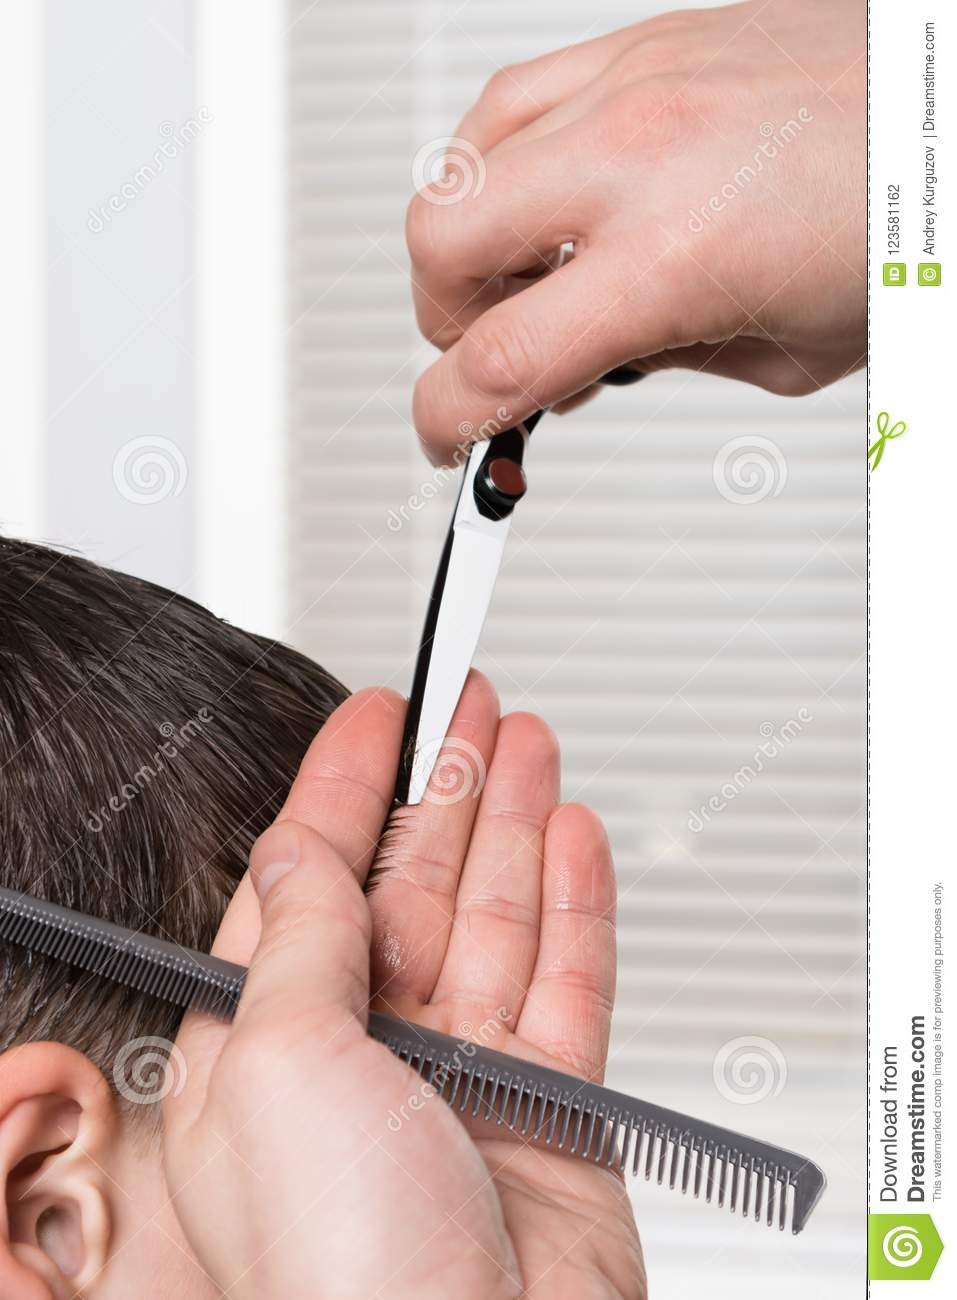 Hairdresser Does A Haircut With A Scissors Boy Close Up Stock Photo